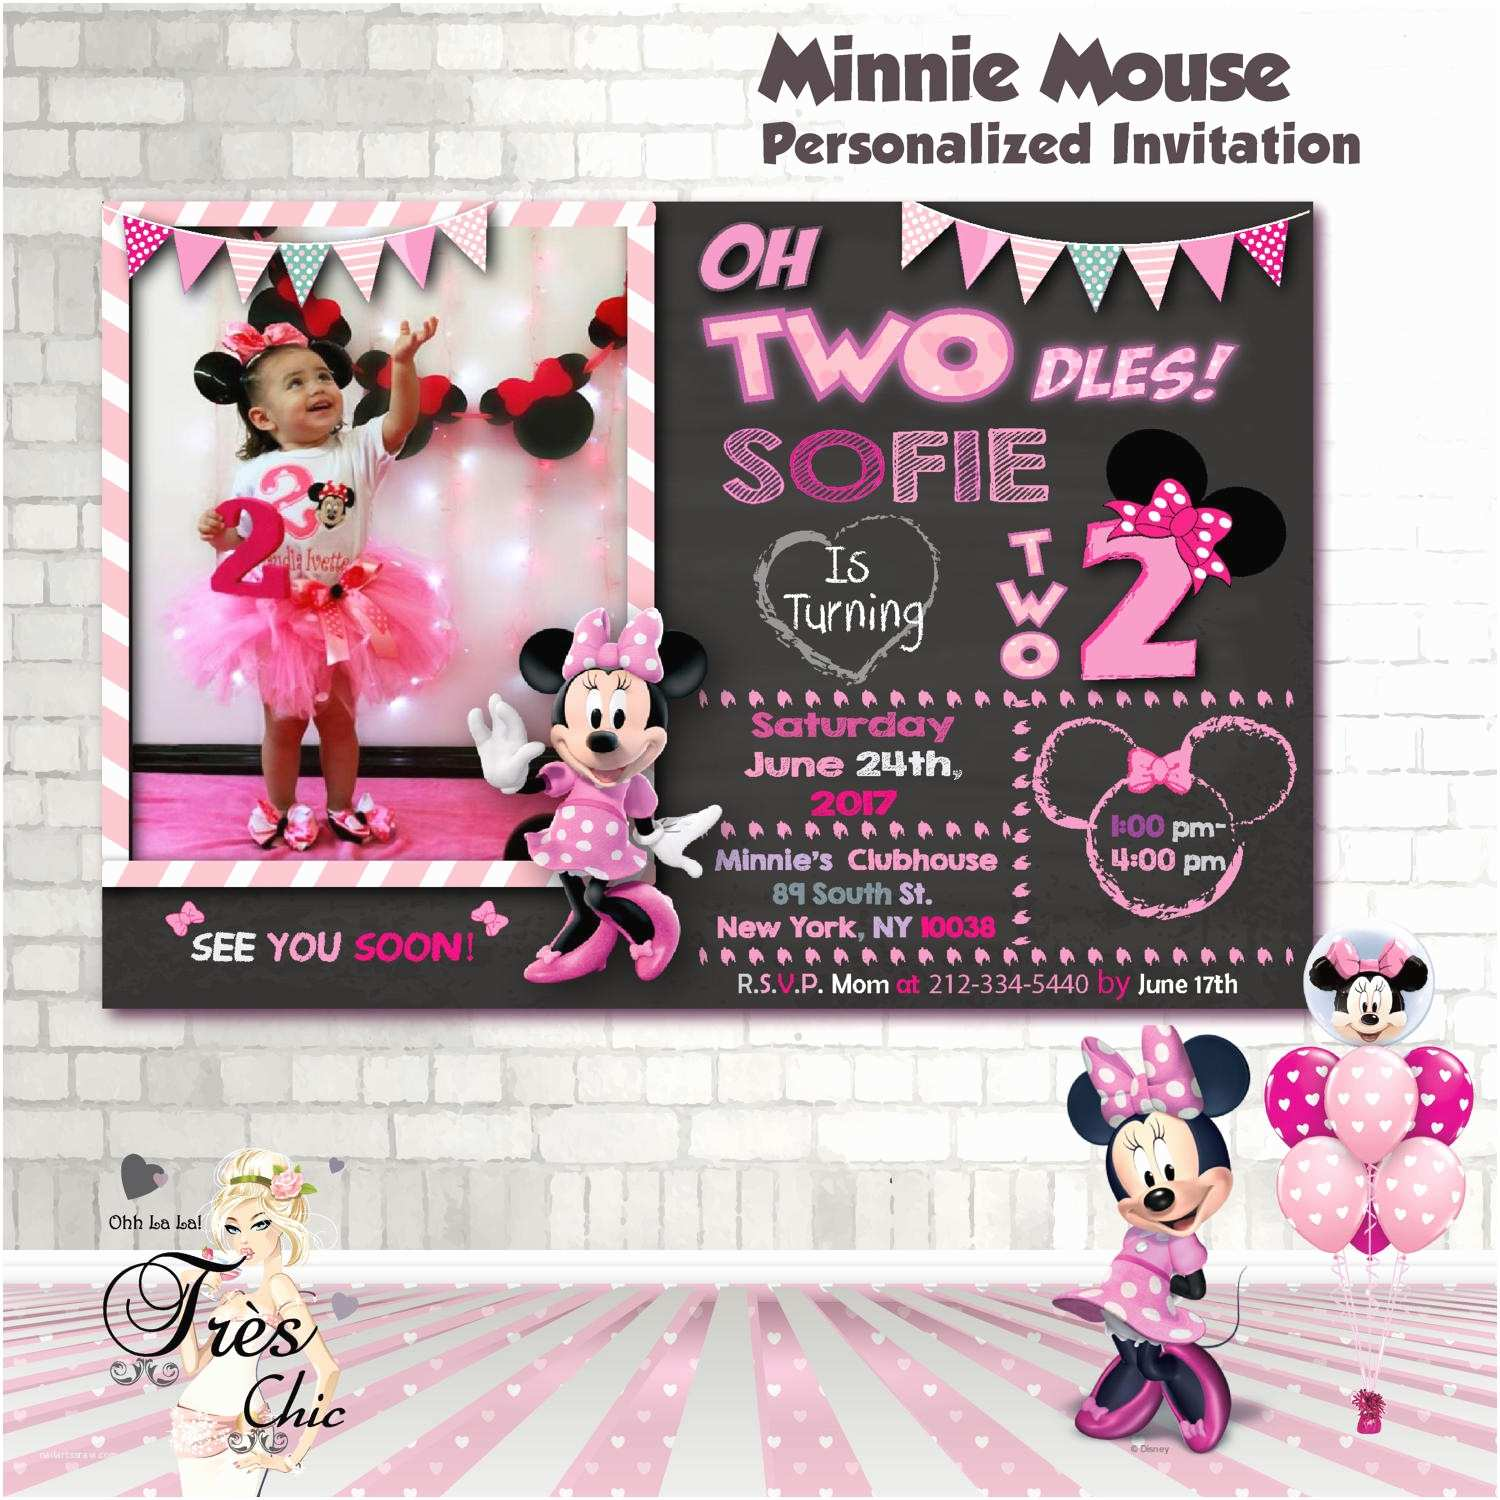 47 Minnie Mouse Birthday Invitations Personalized